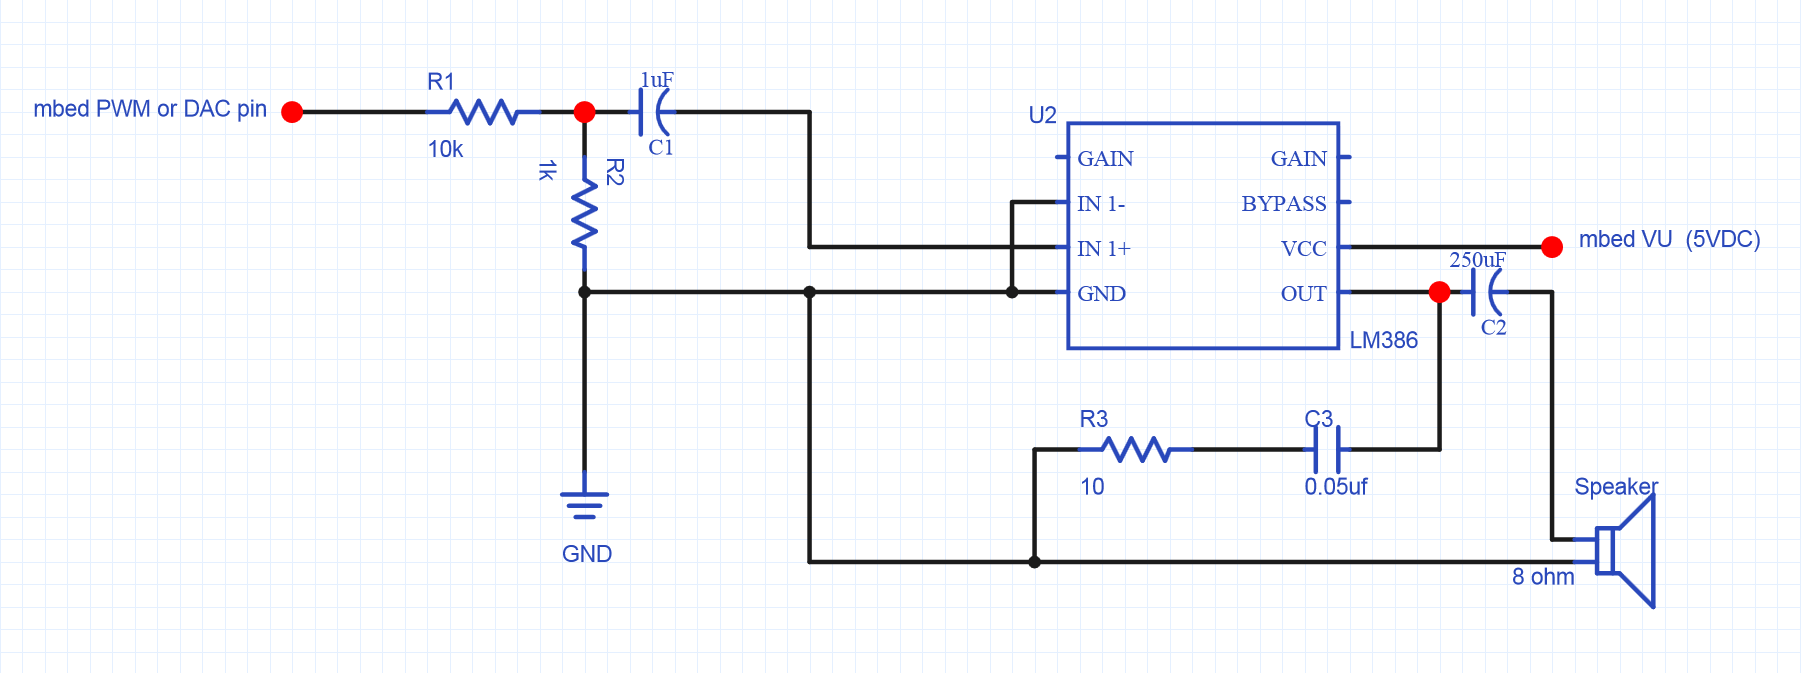 Using A Speaker For Audio Output Mbed 20w Car Amplifier Circuit Design Lm386 Small 8ohm 5w Smaller Value R1 Can Be Used To Increase The Volume